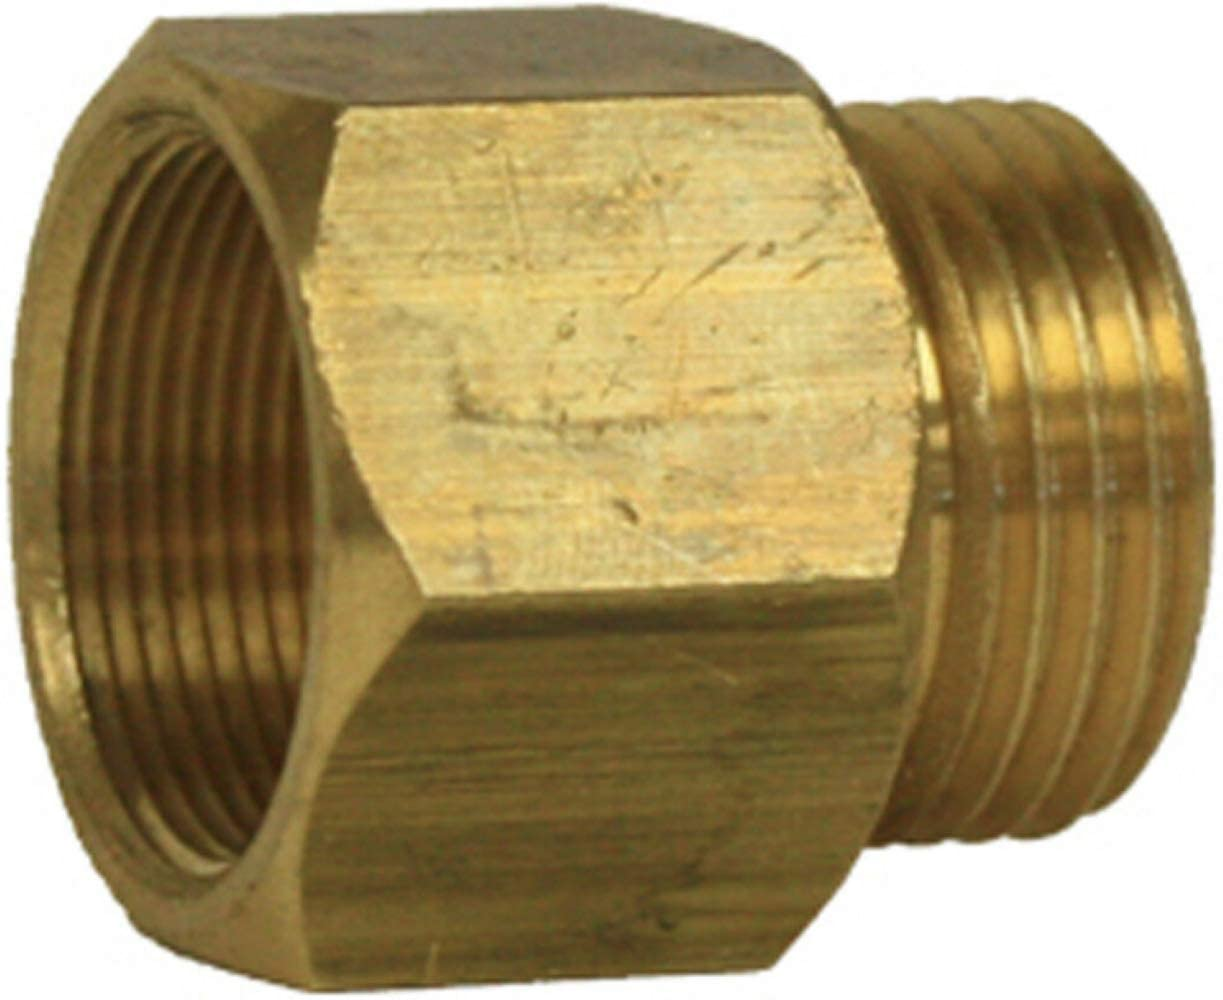 Replacement Adapter for Hose Bib, 1 1/16